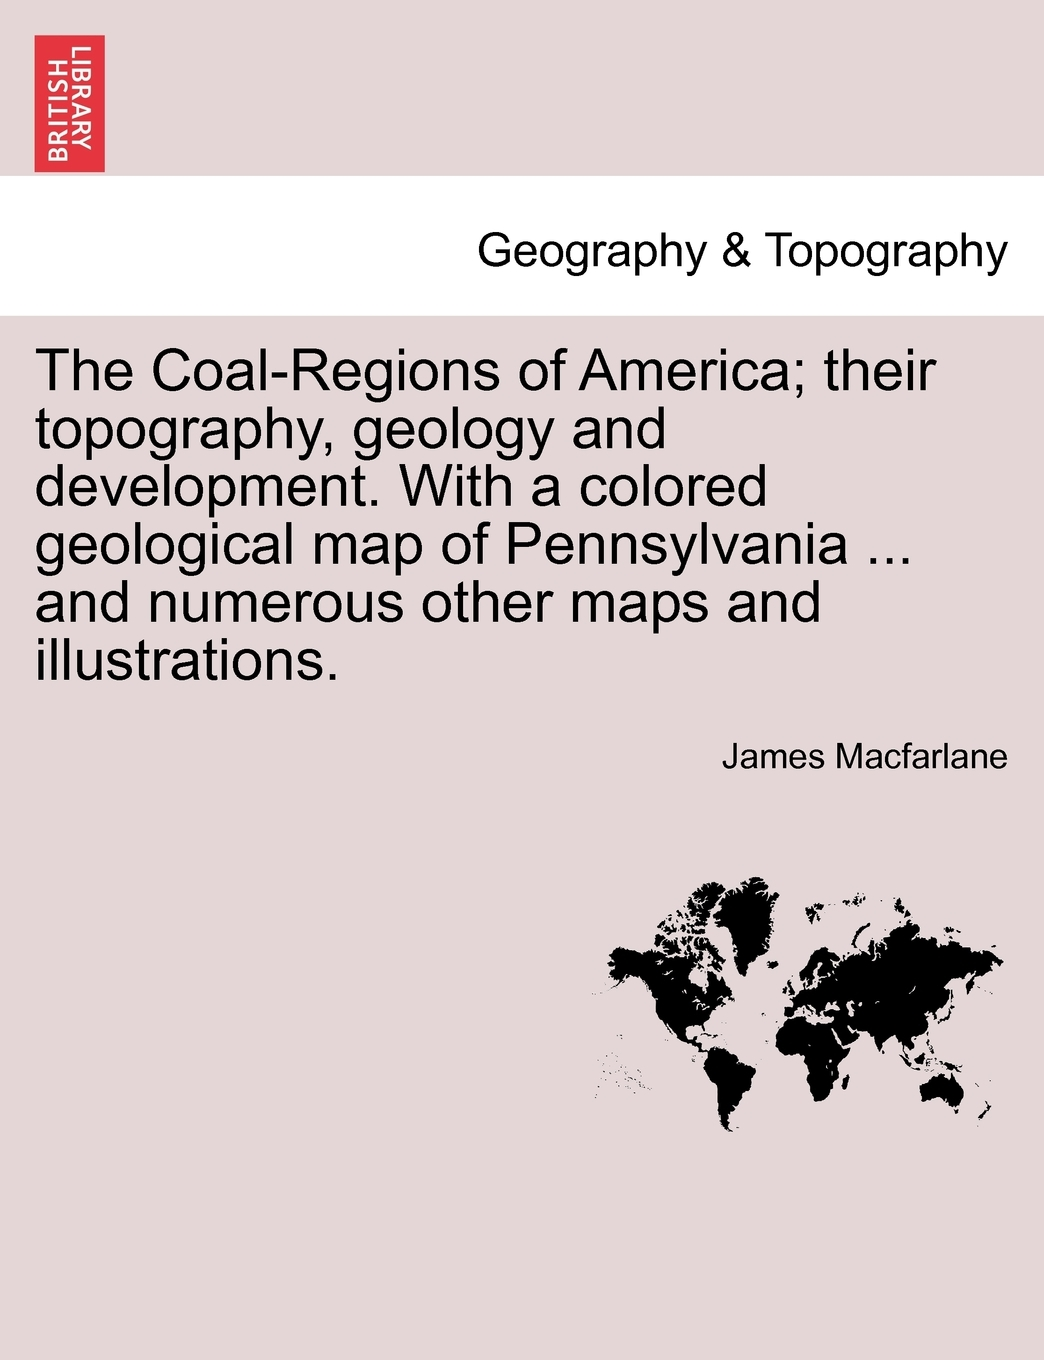 The Coal-Regions of America; Their Topography, Geology and